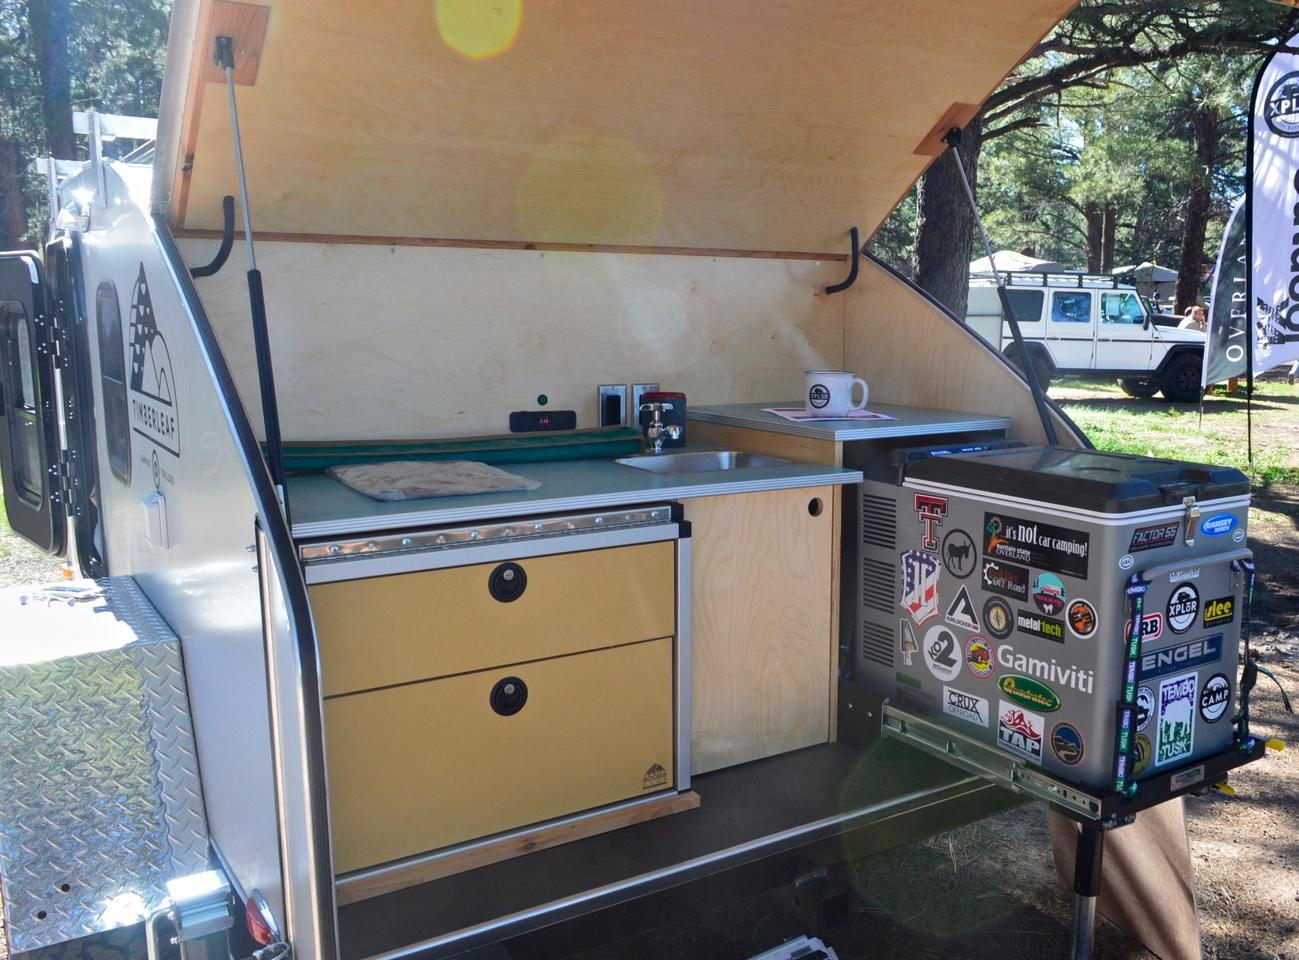 This Timberleaf trailer has a refrigerator instead of the wood cooler